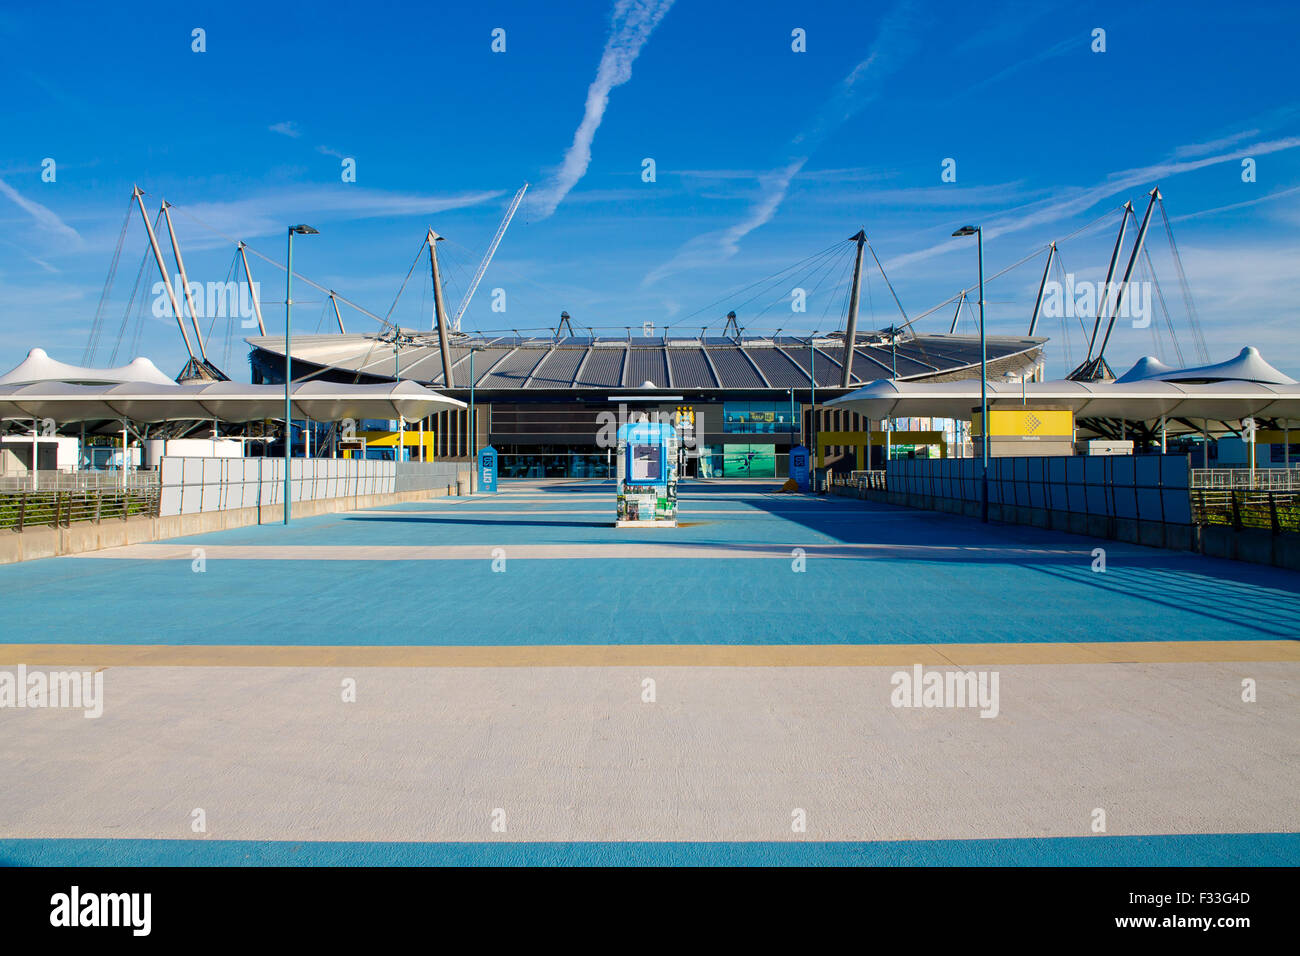 City of Manchester Stadium (commonly known as Etihad Stadium) in Sports City, Manchester, United Kingdom. - Stock Image